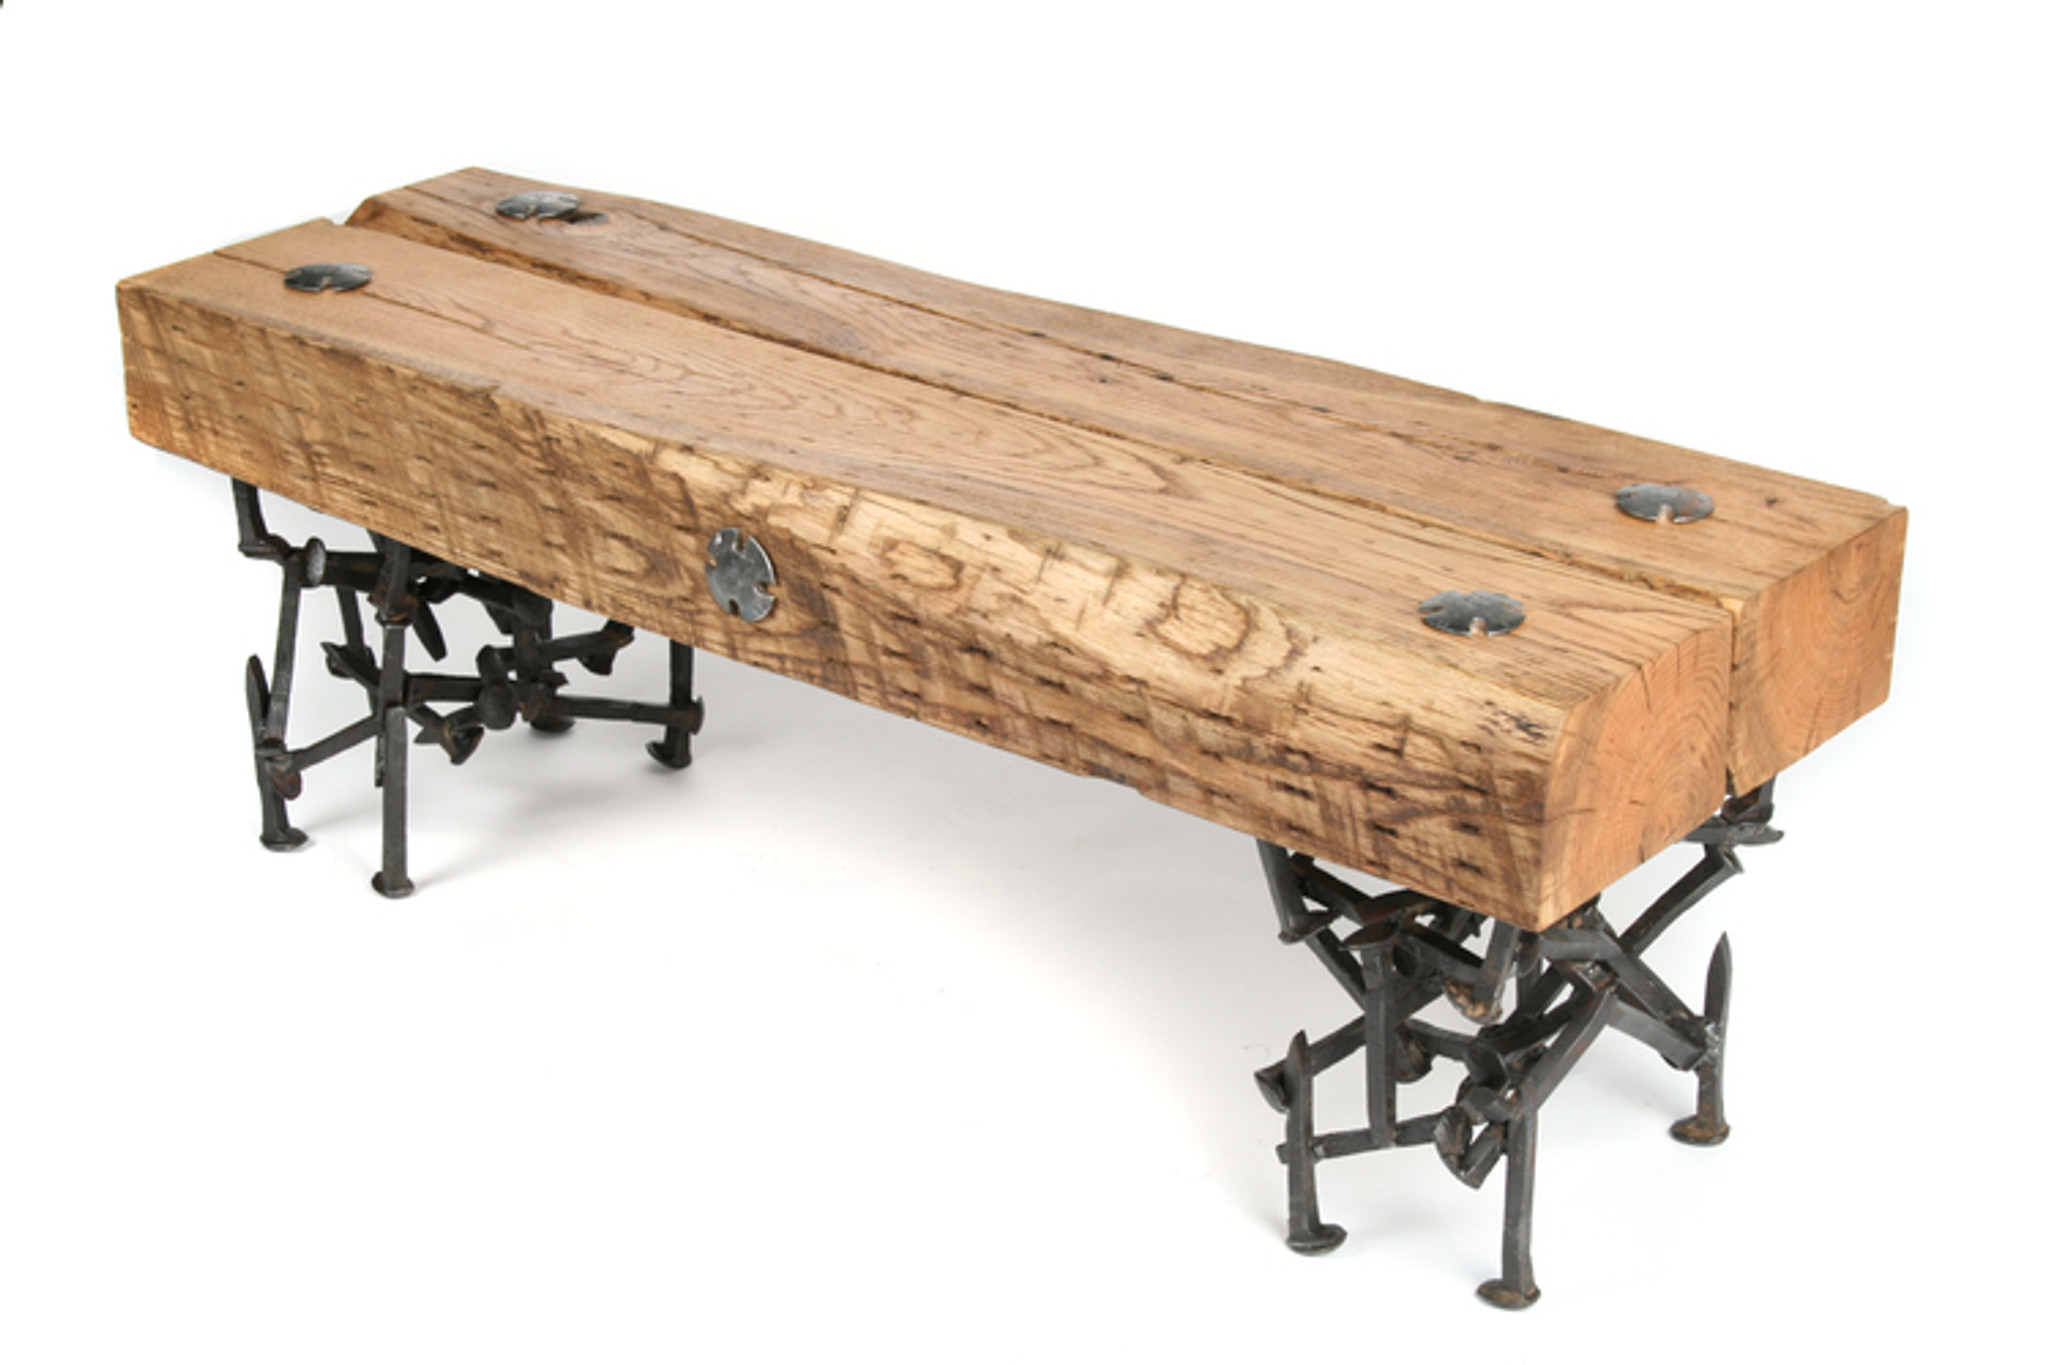 refined rustic bench with timber seat iron legs from salvage scrap metal